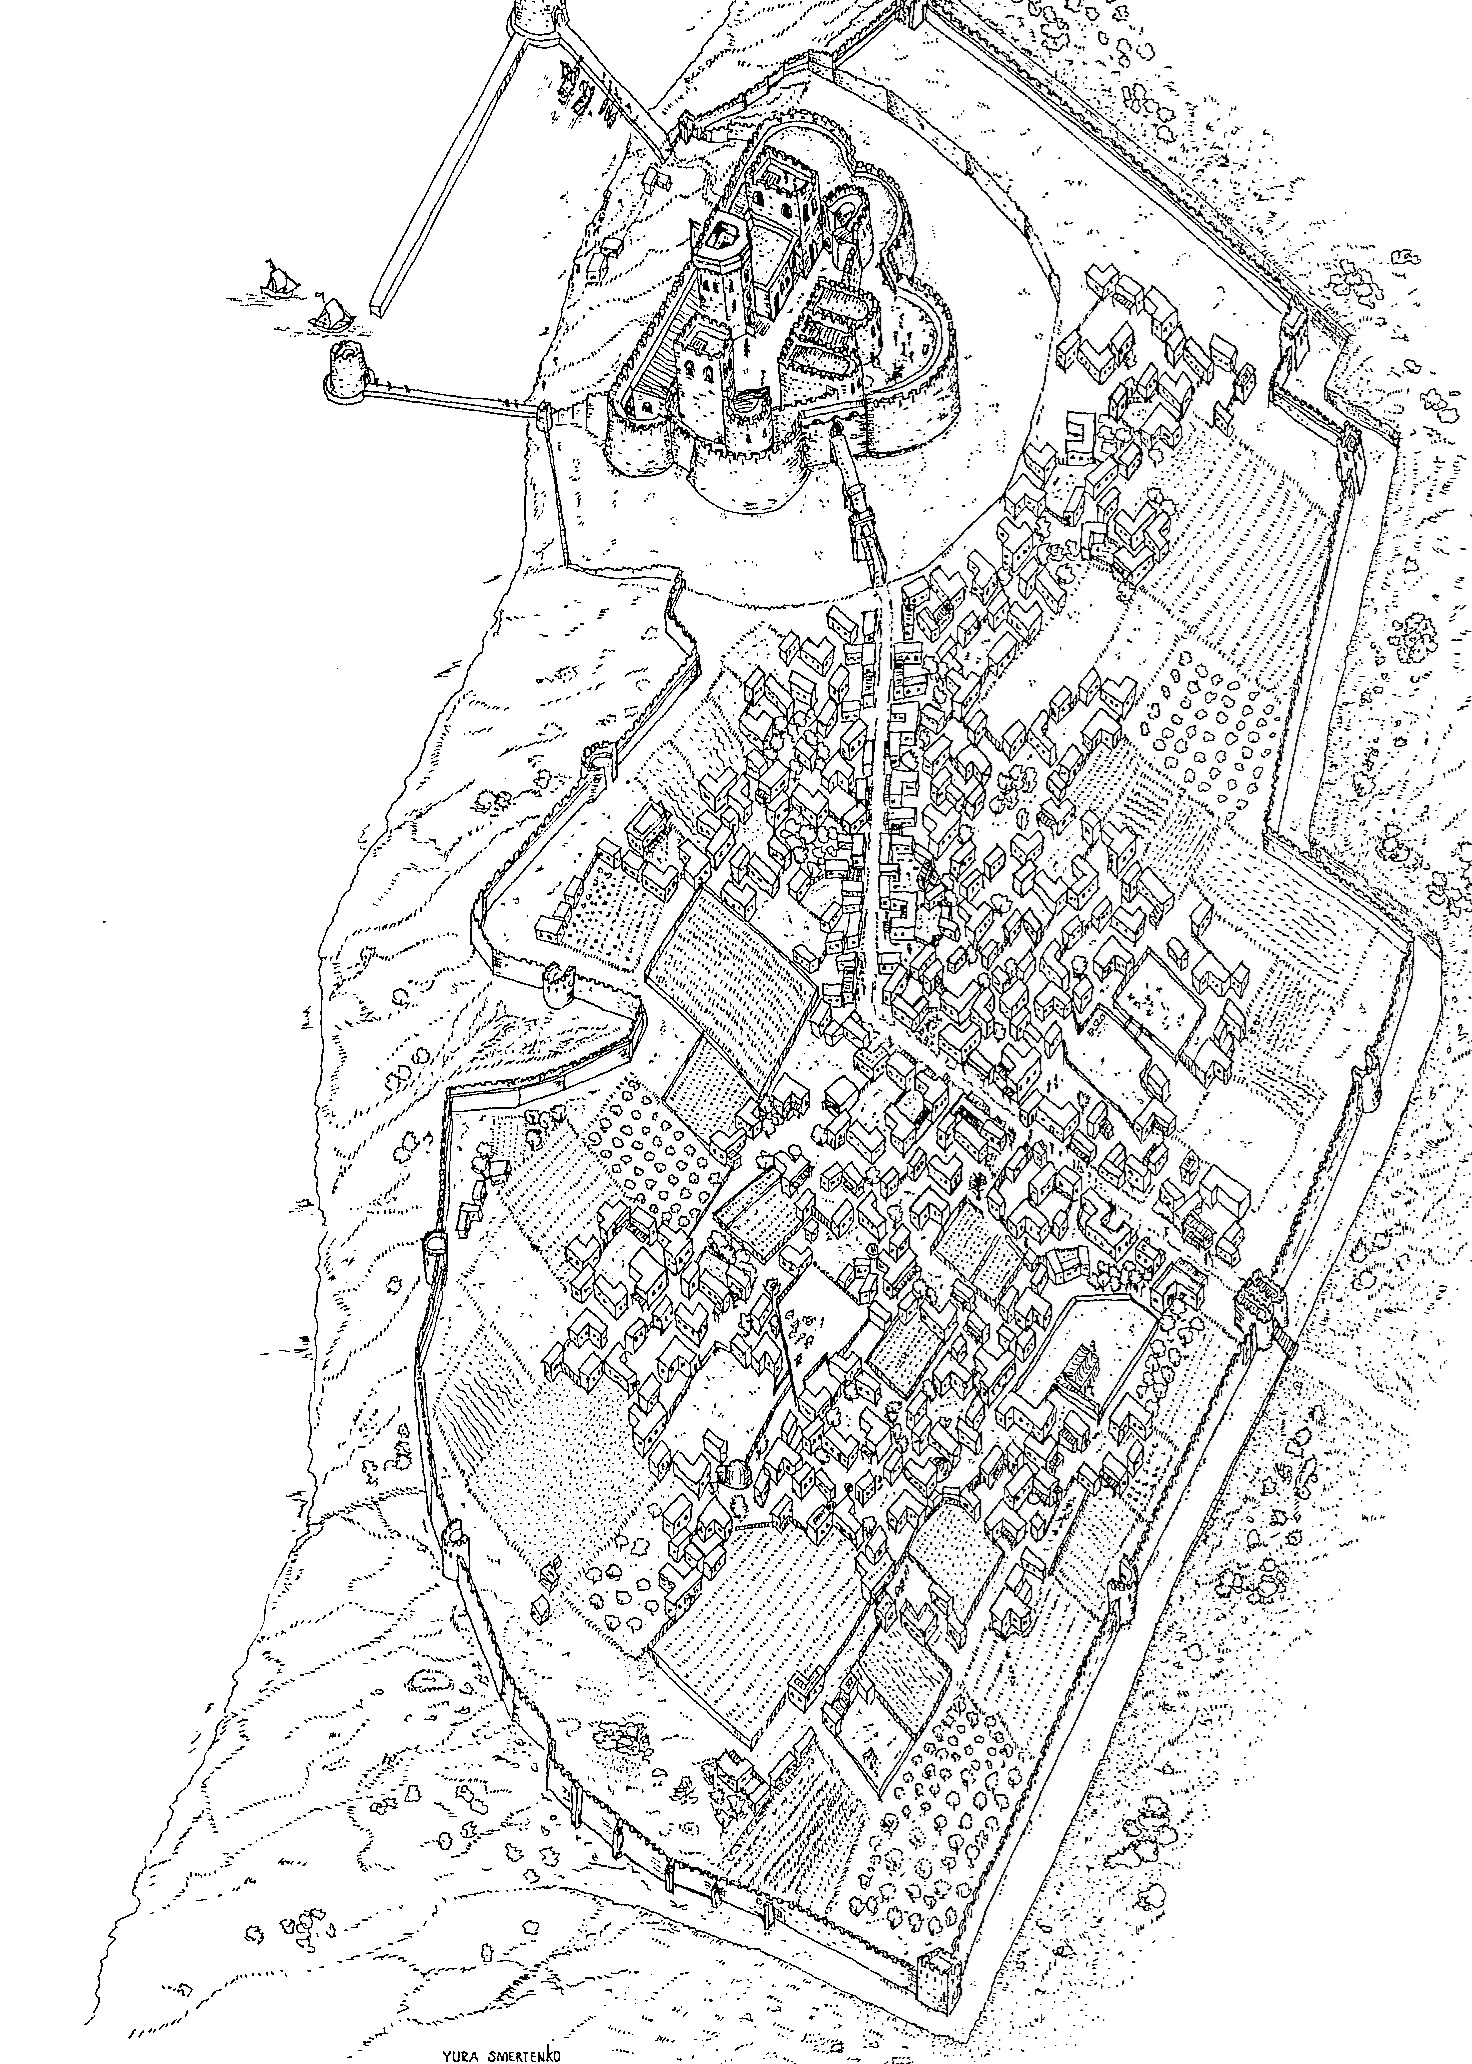 Crusader city: A bird's-eye view of the reconstruction of Crusader City.